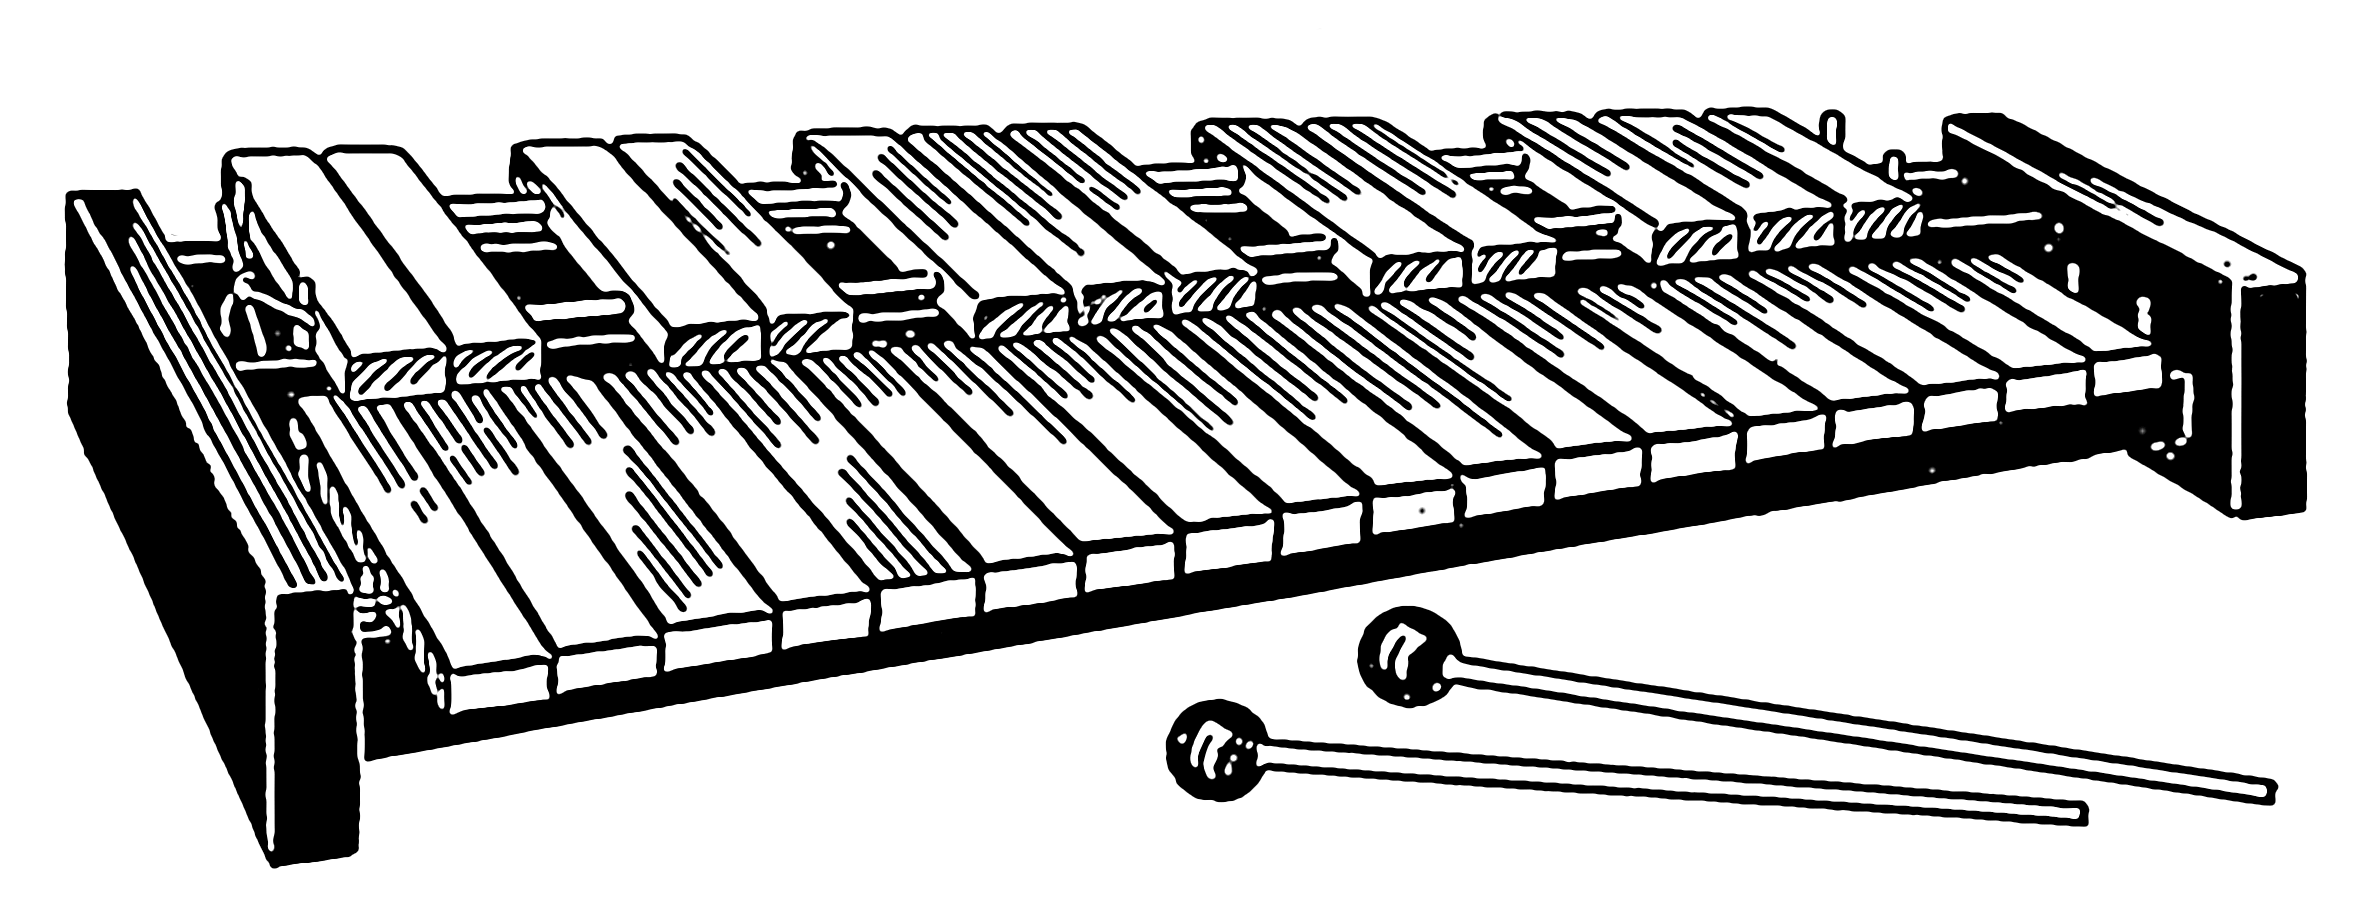 Xylophone PNG - 164